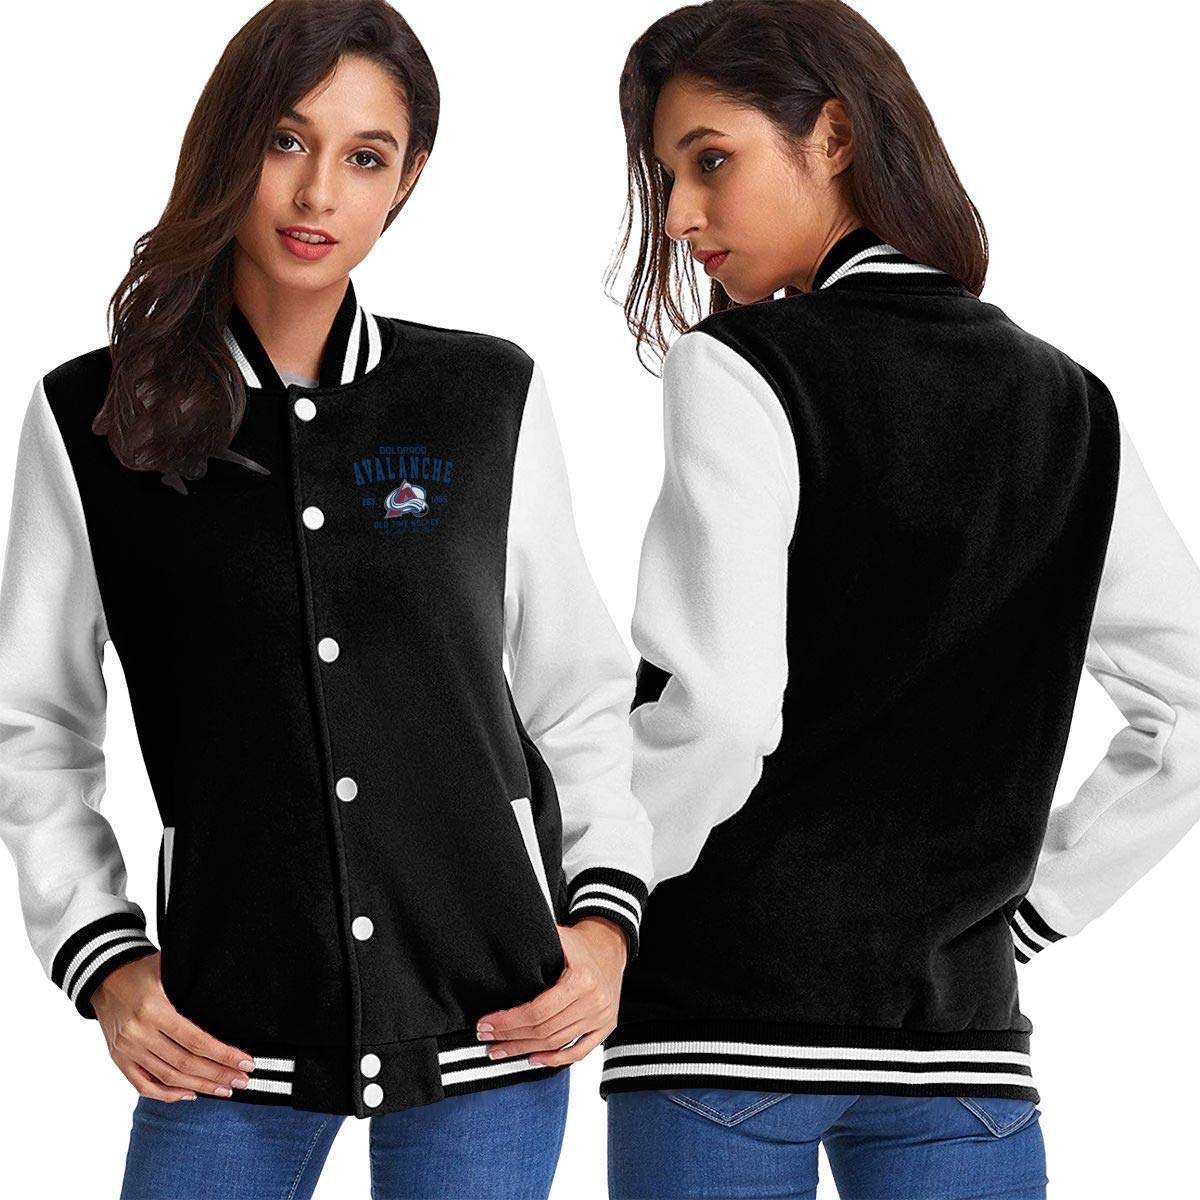 Black Women Basketballsadw coloradoAvalancheOldTimeHockey Baseball Uniform Jacket